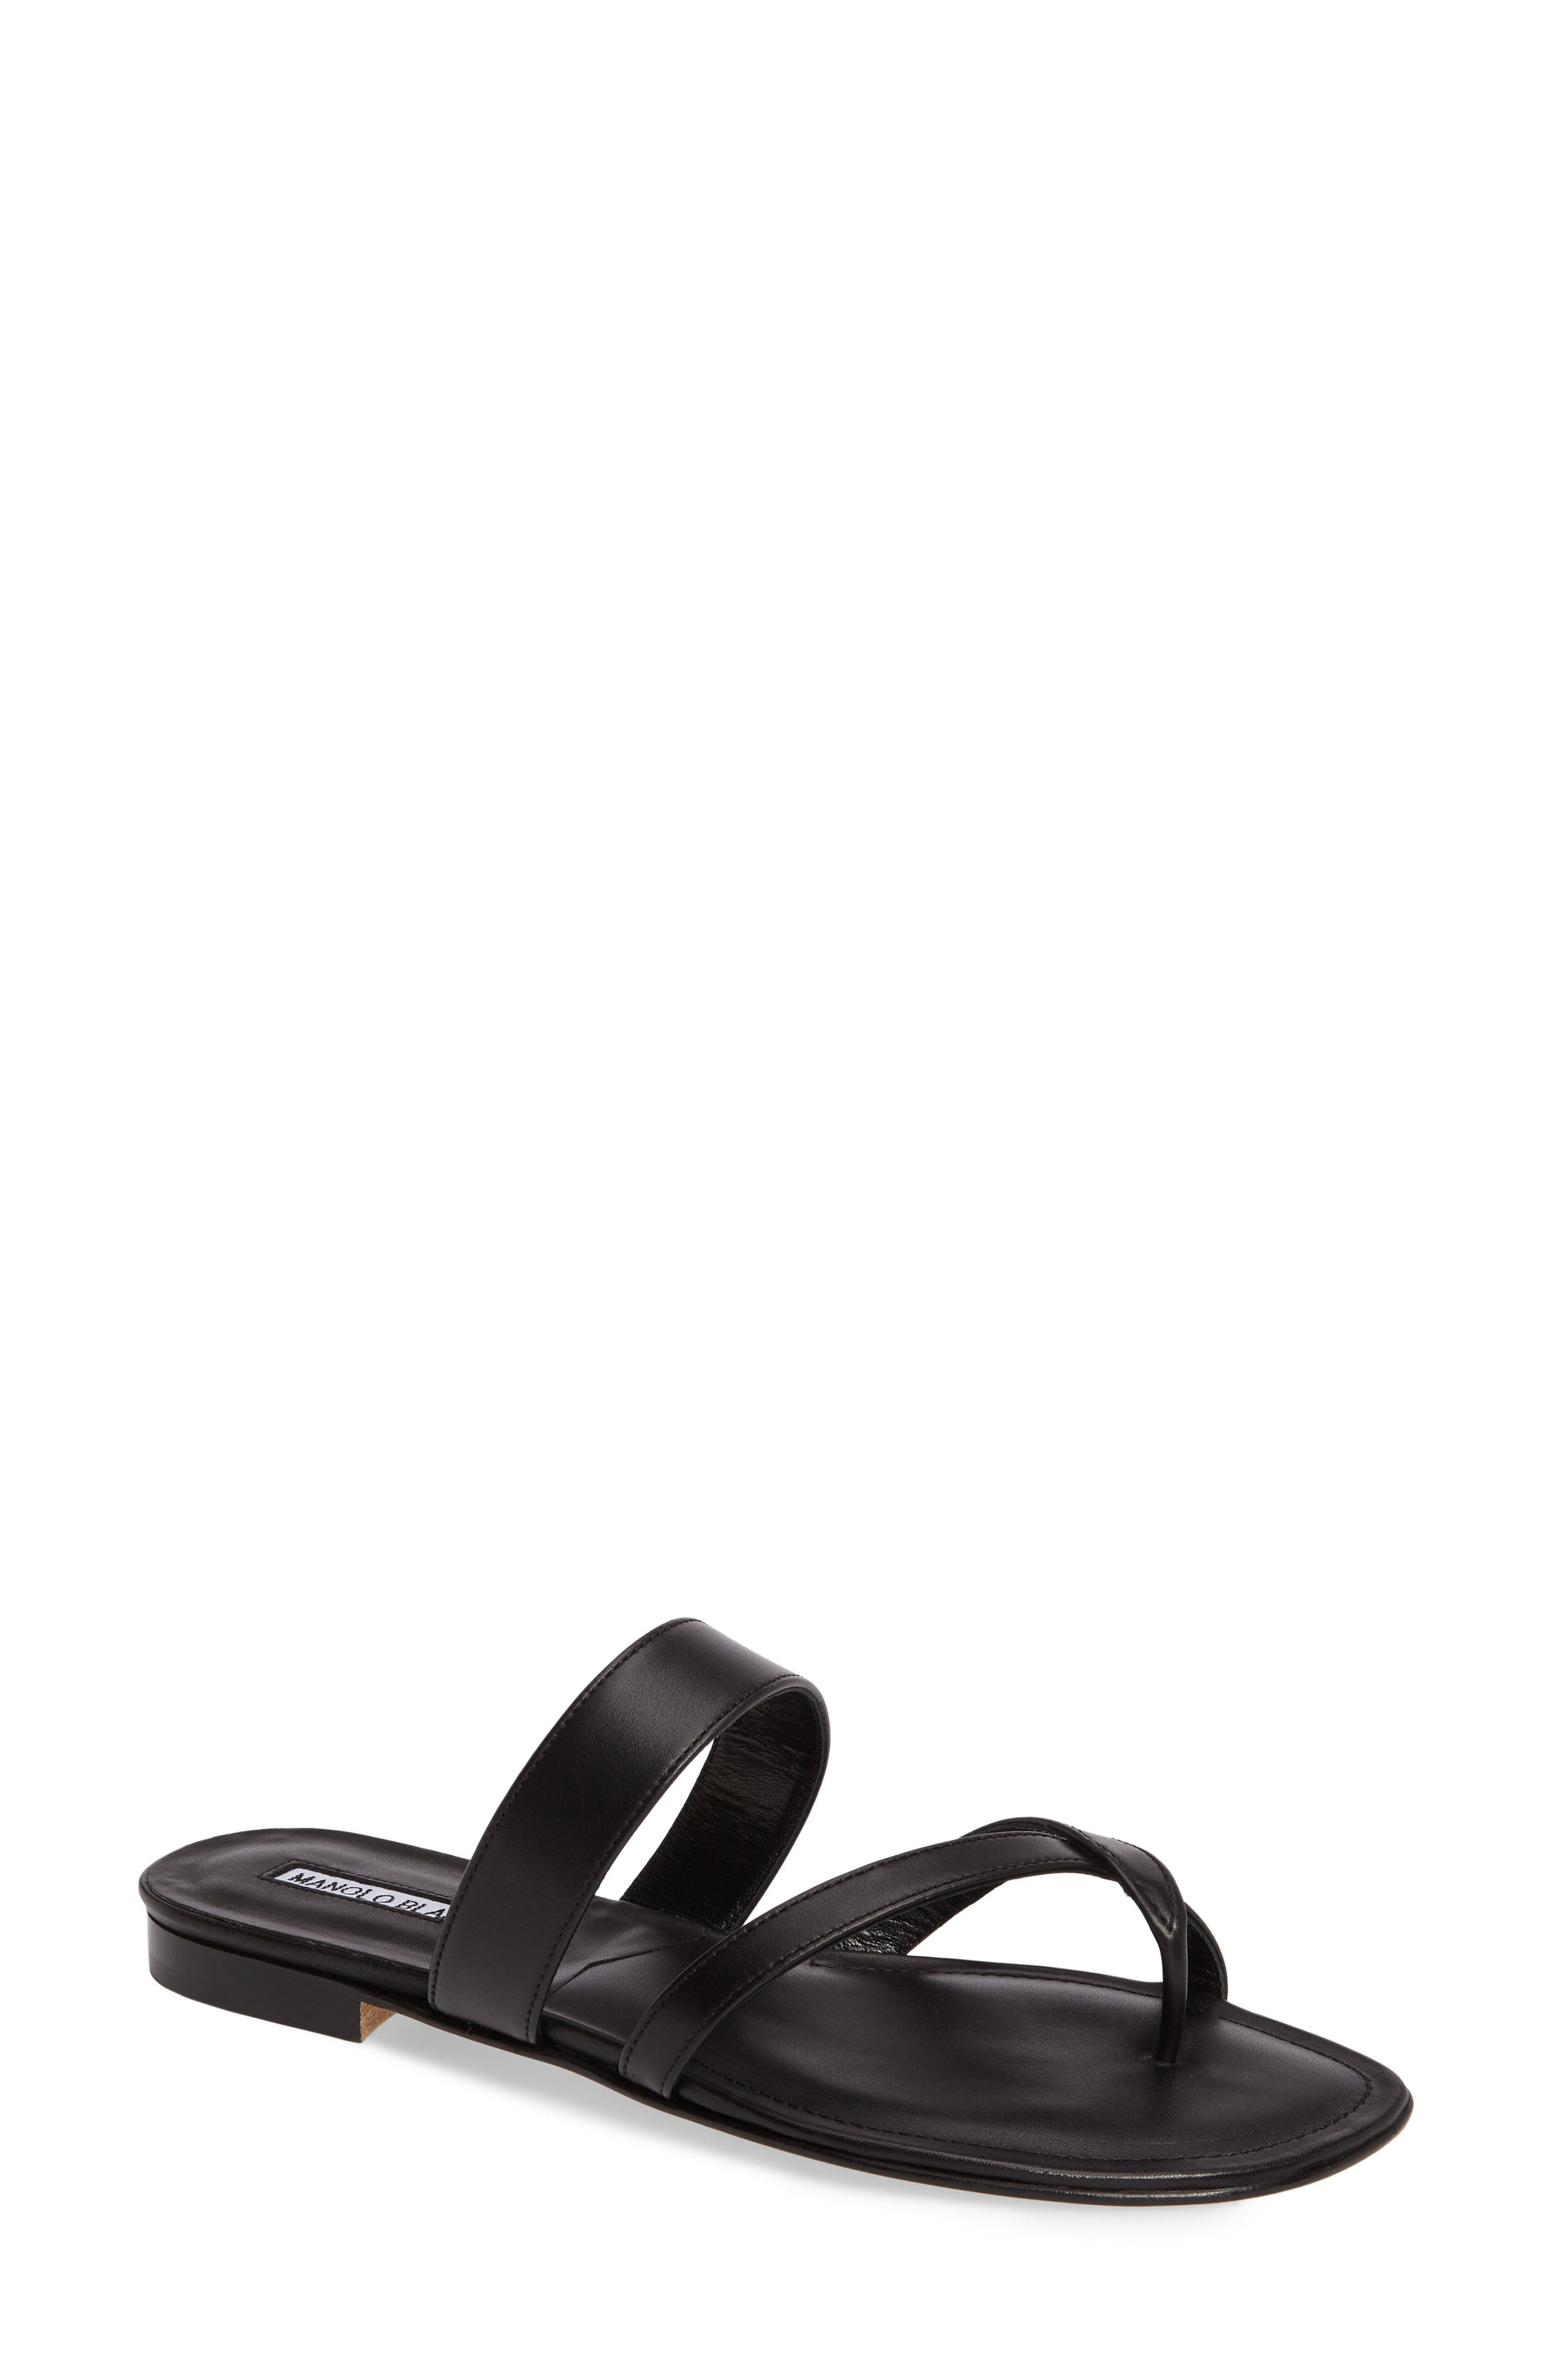 MANOLO BLAHNIK Leather Crisscross Slides in Black Leather